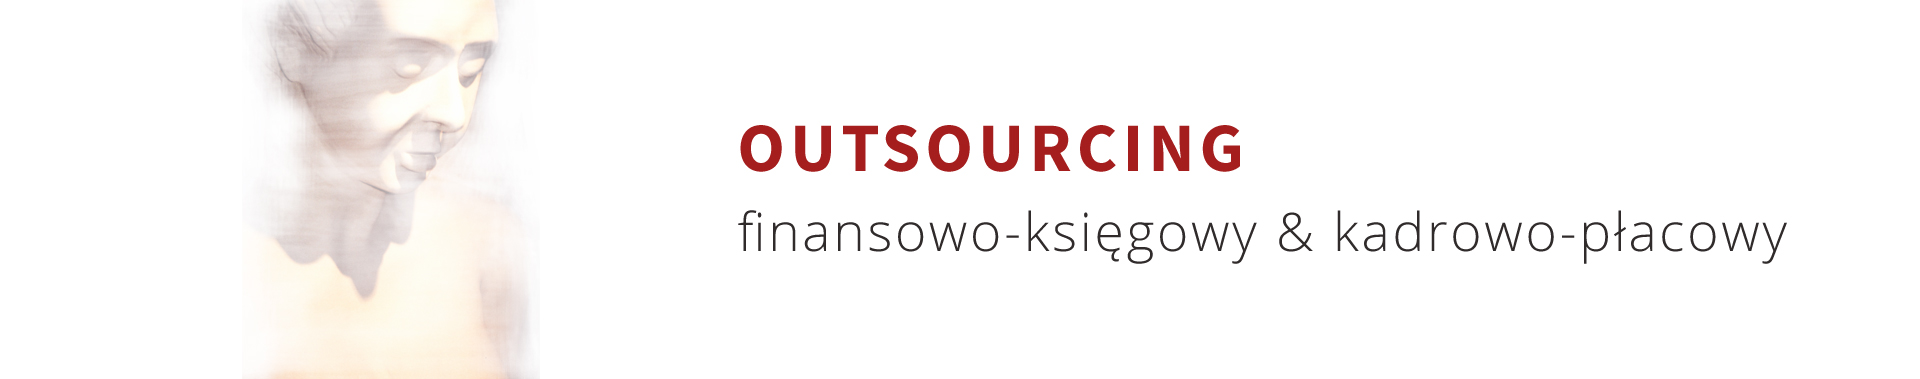 outsourcing- FK & KP